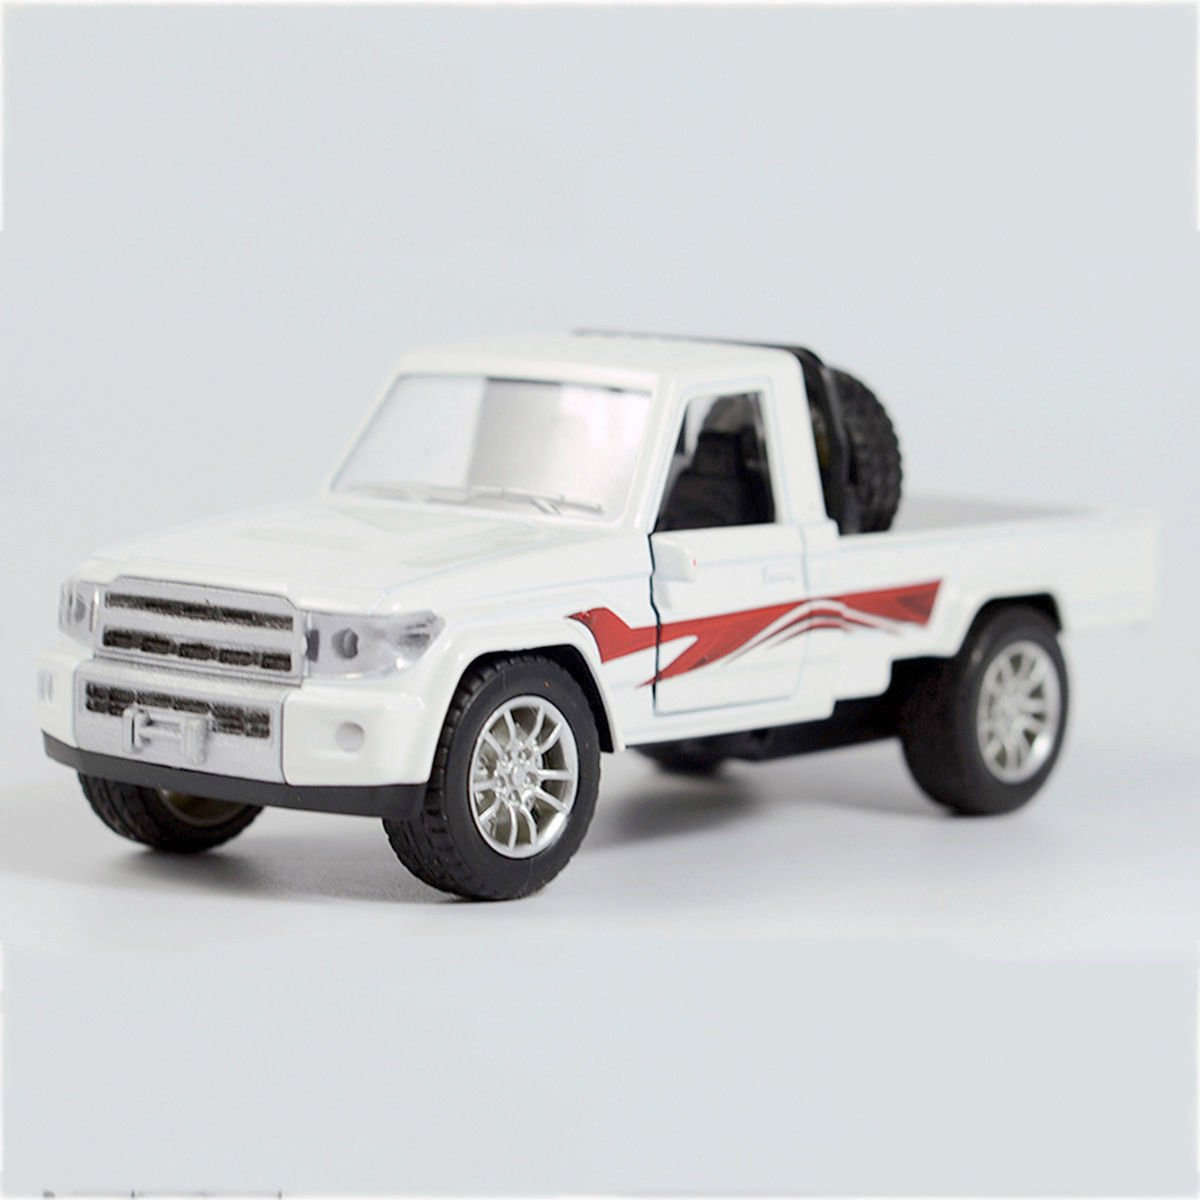 1:28 Military Force Pickup Off-road Vehicle Alloy Diecast Car Model Toy White